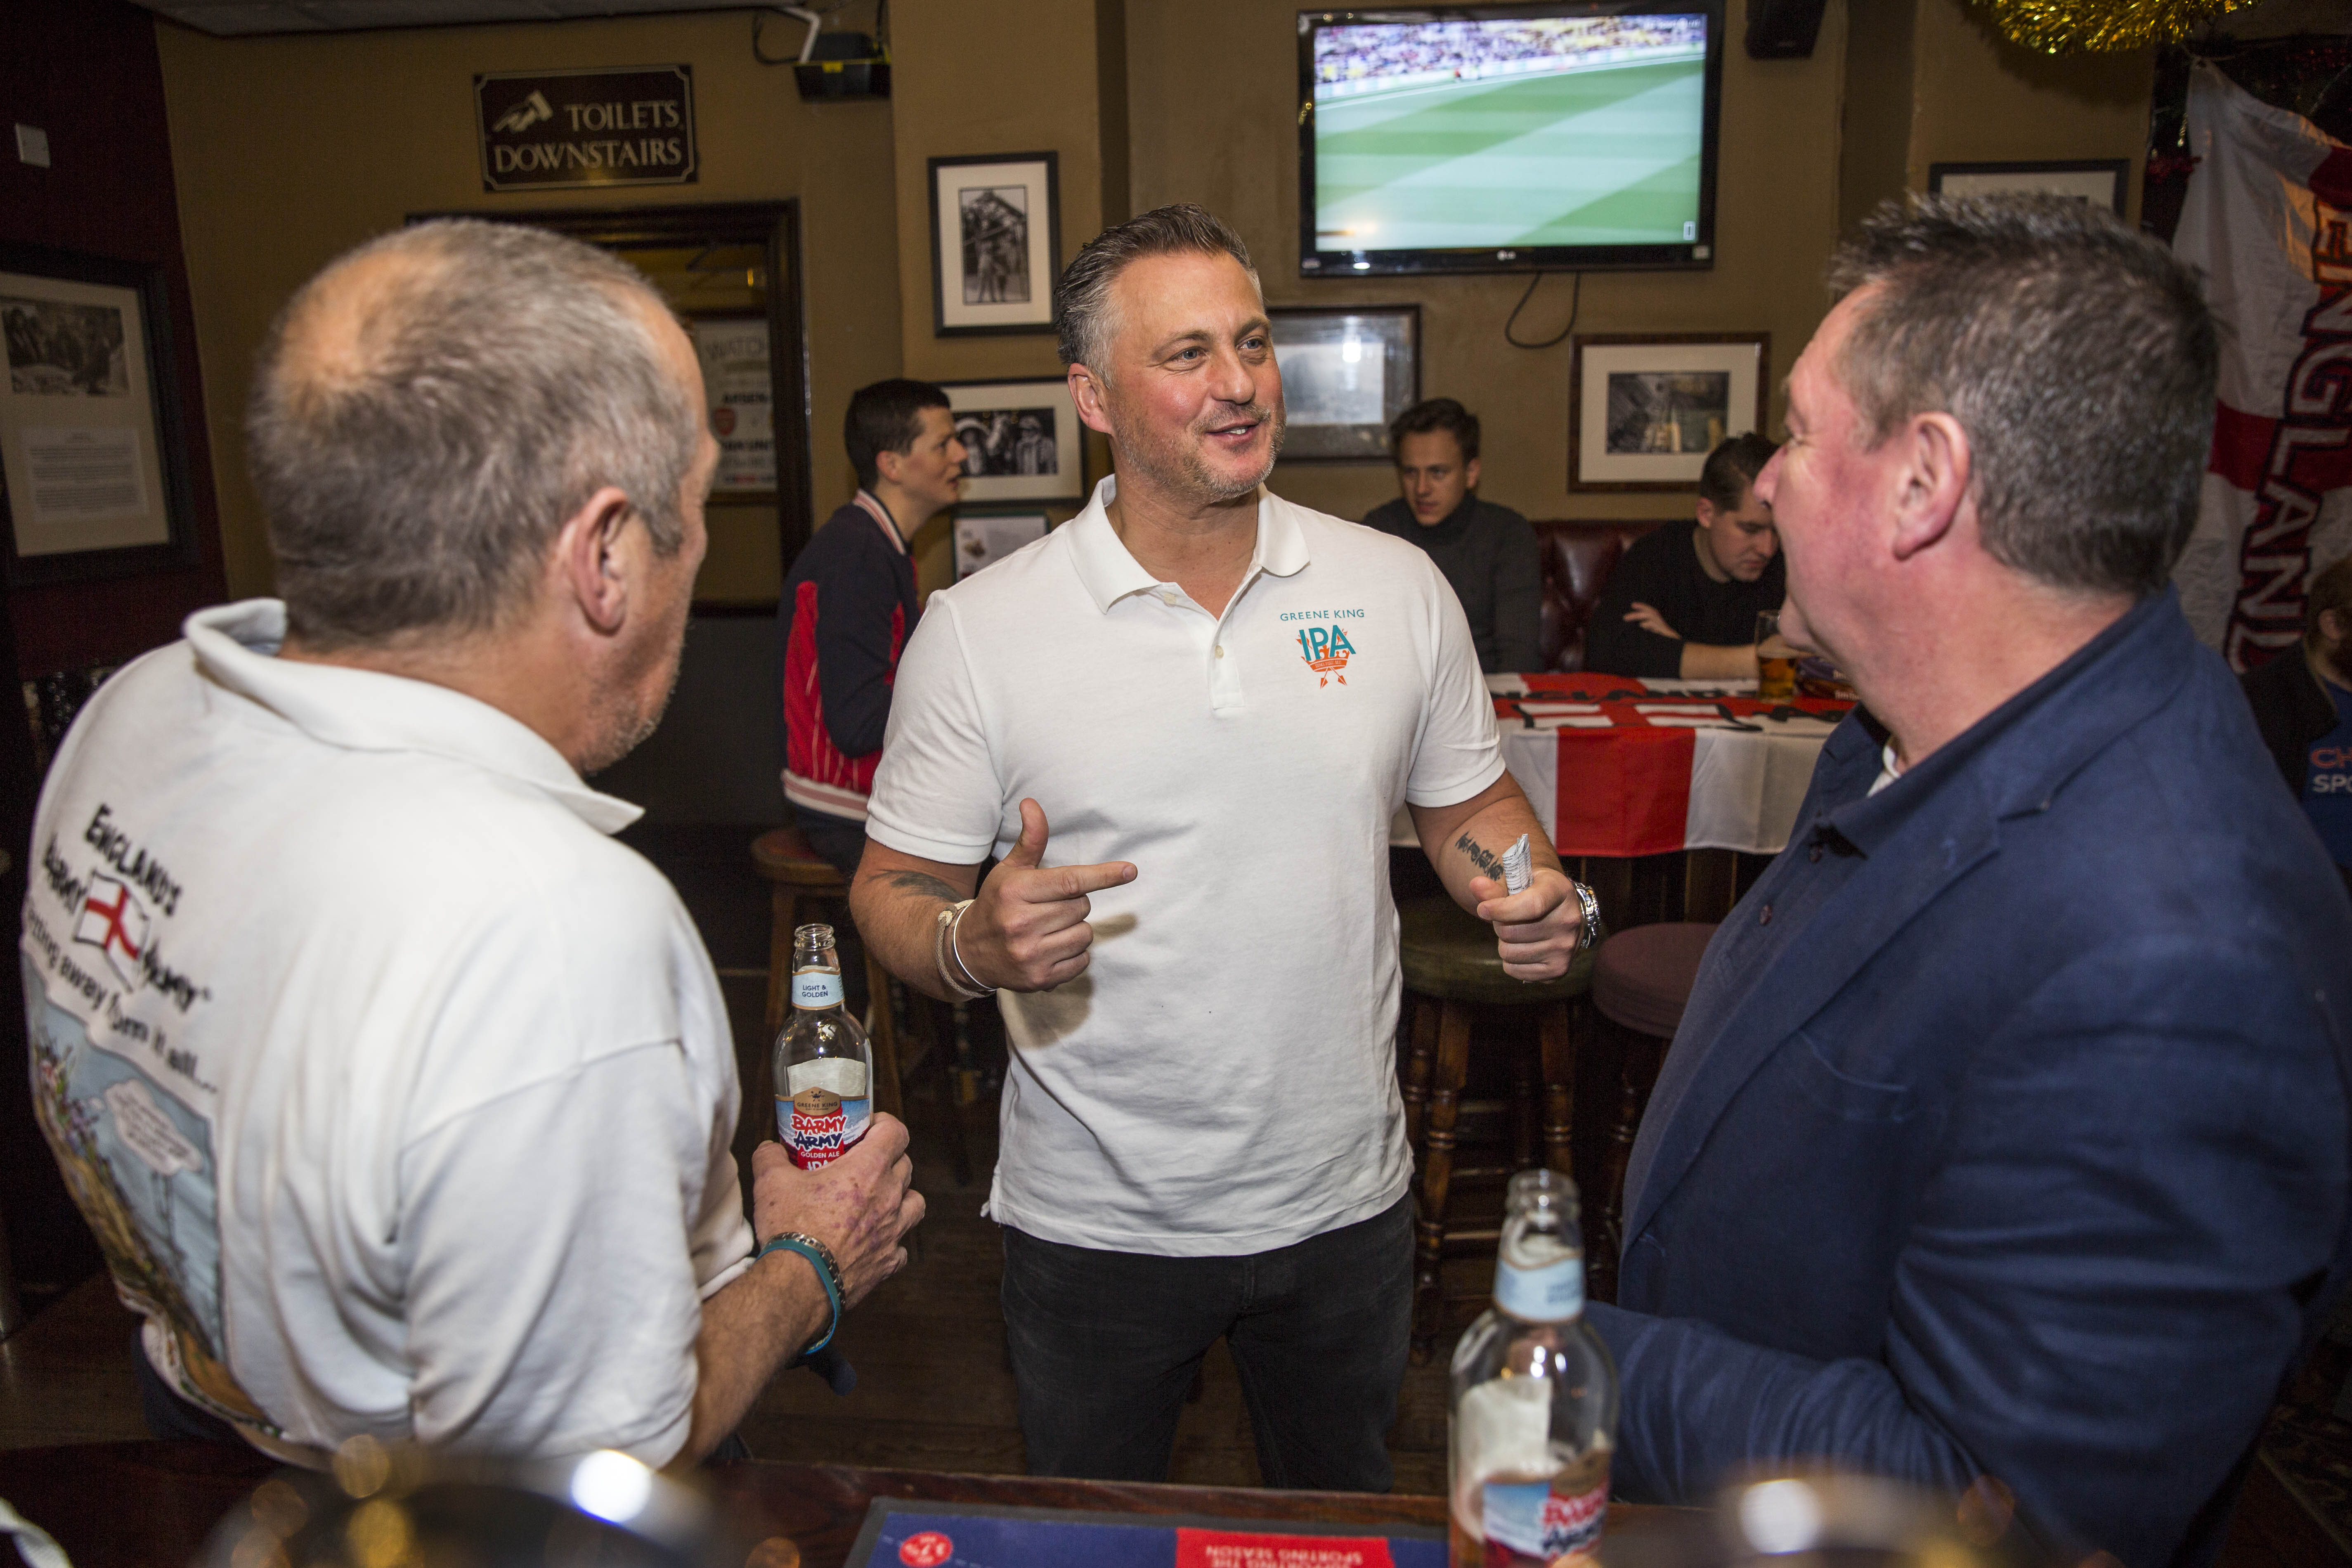 Darren Gough shares a pint with fans, while discussing the start of the second test of The Ashes